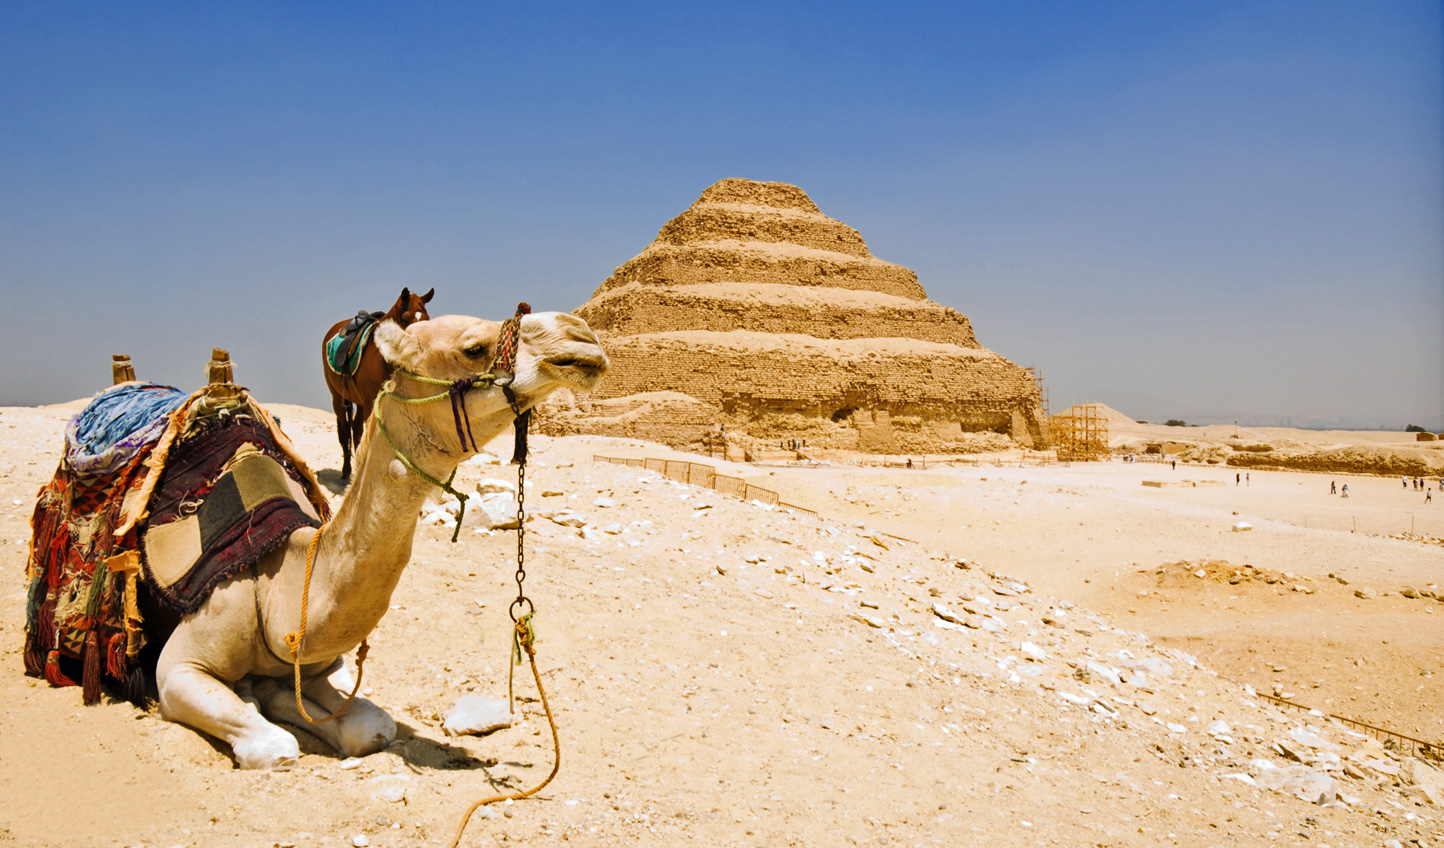 Head out of the city to Saqqara